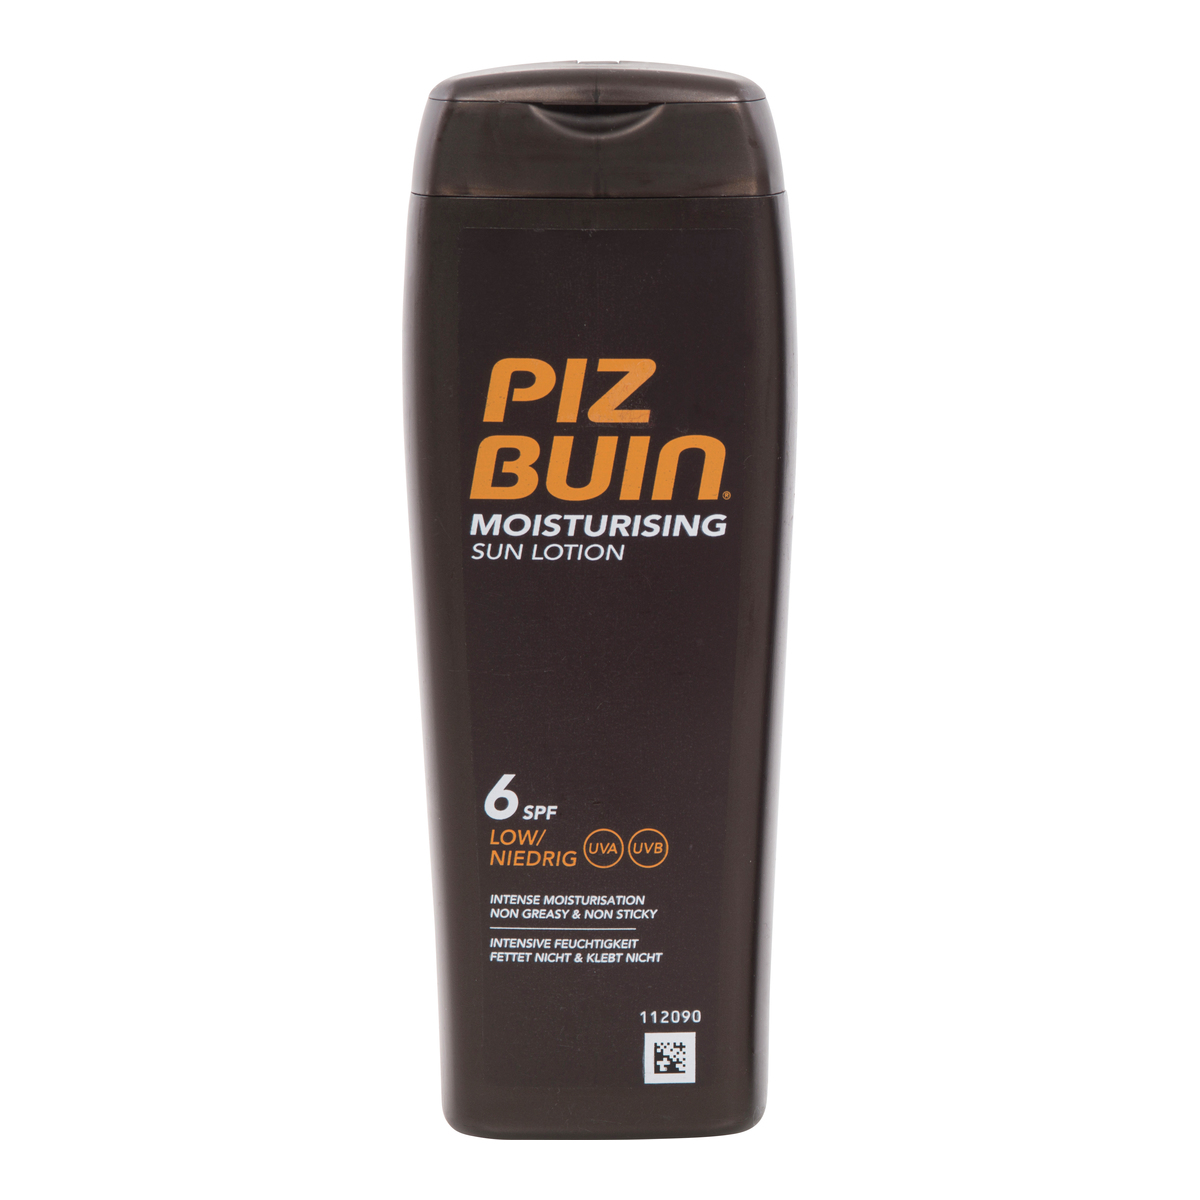 Sun lotion SF6-PIZ007